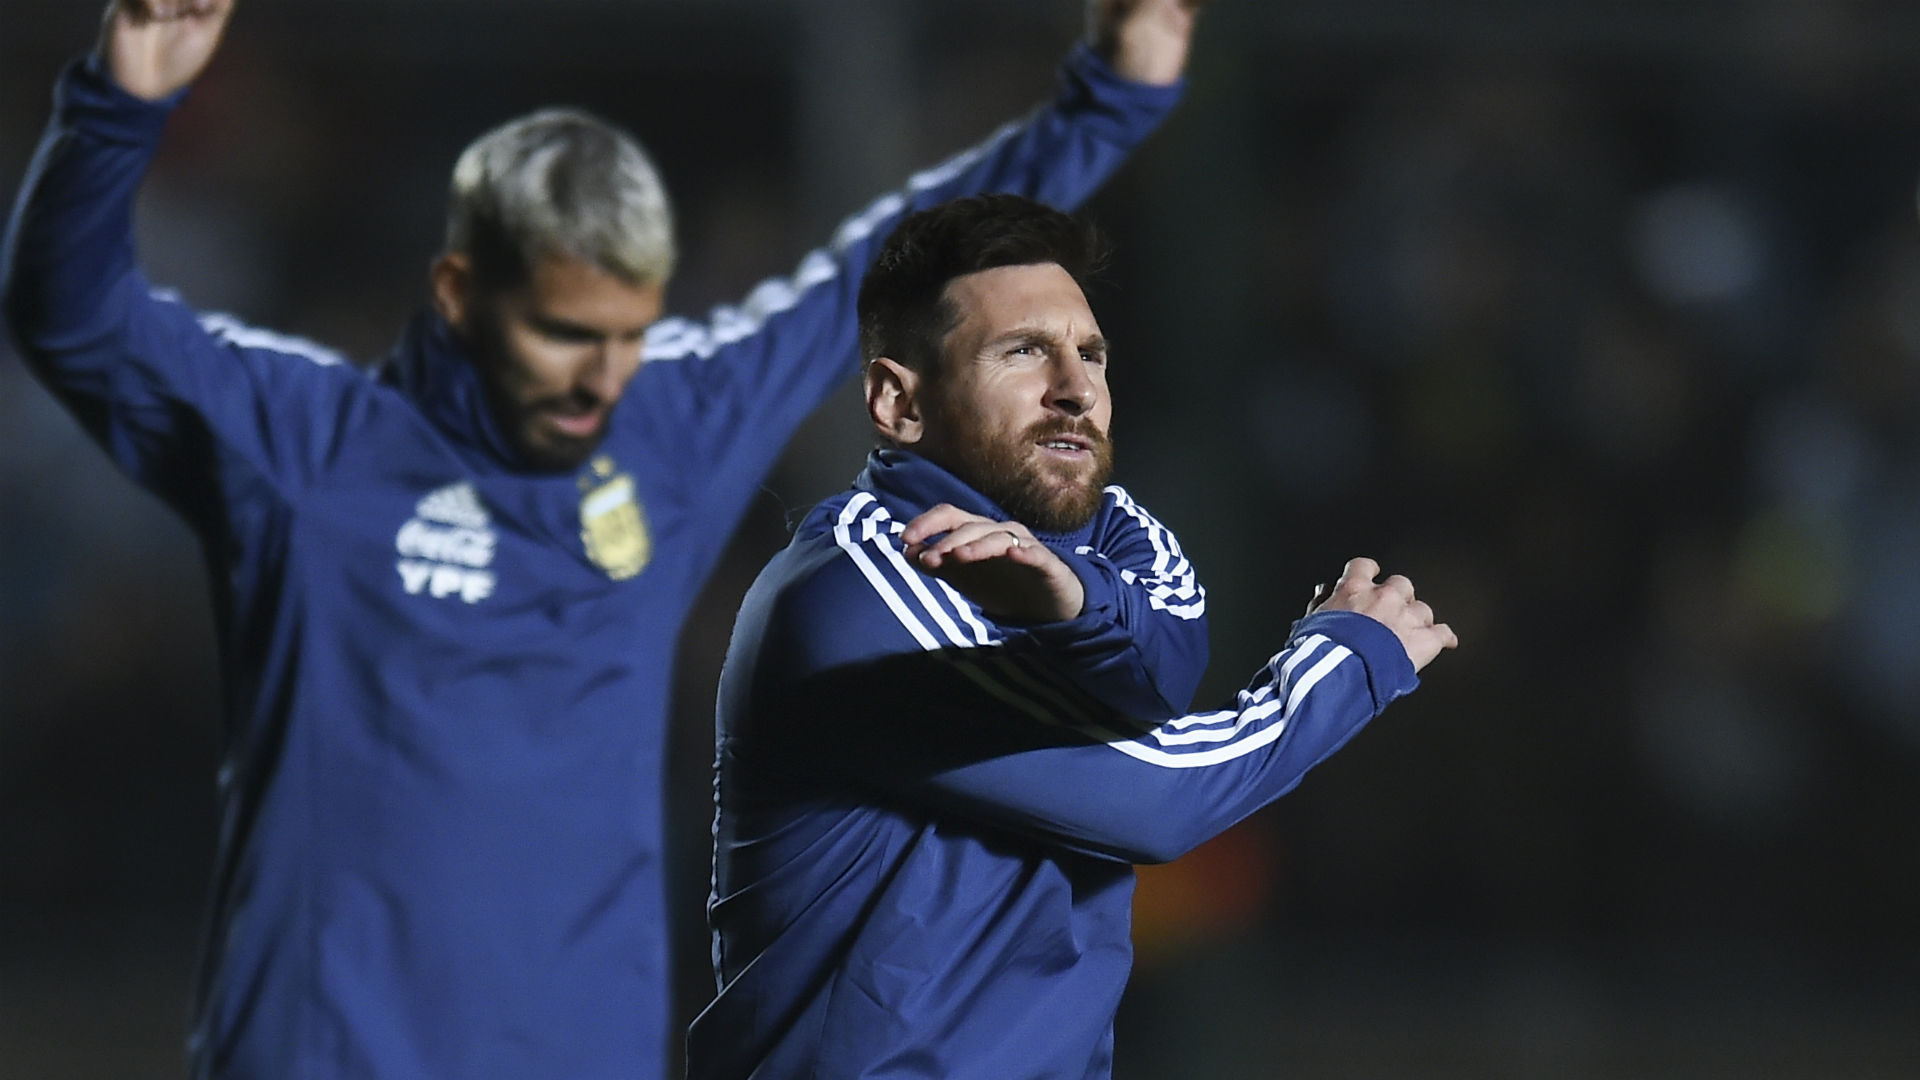 Argentina v Colombia: Messi begins latest quest for international silverware